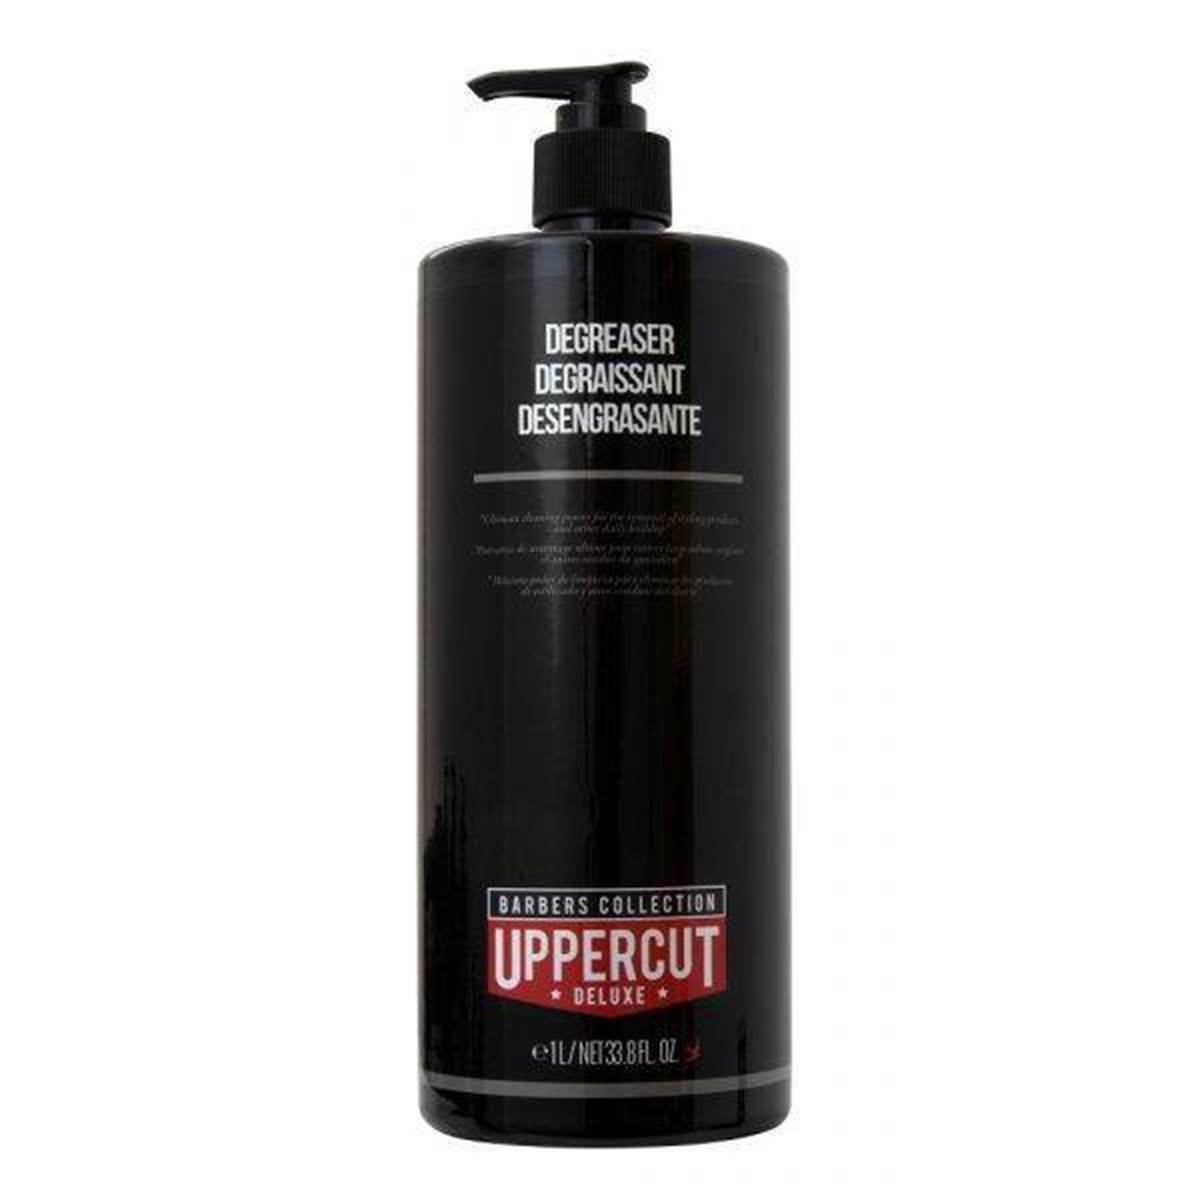 Picture of Uppercut Deluxe Degreaser 240ml